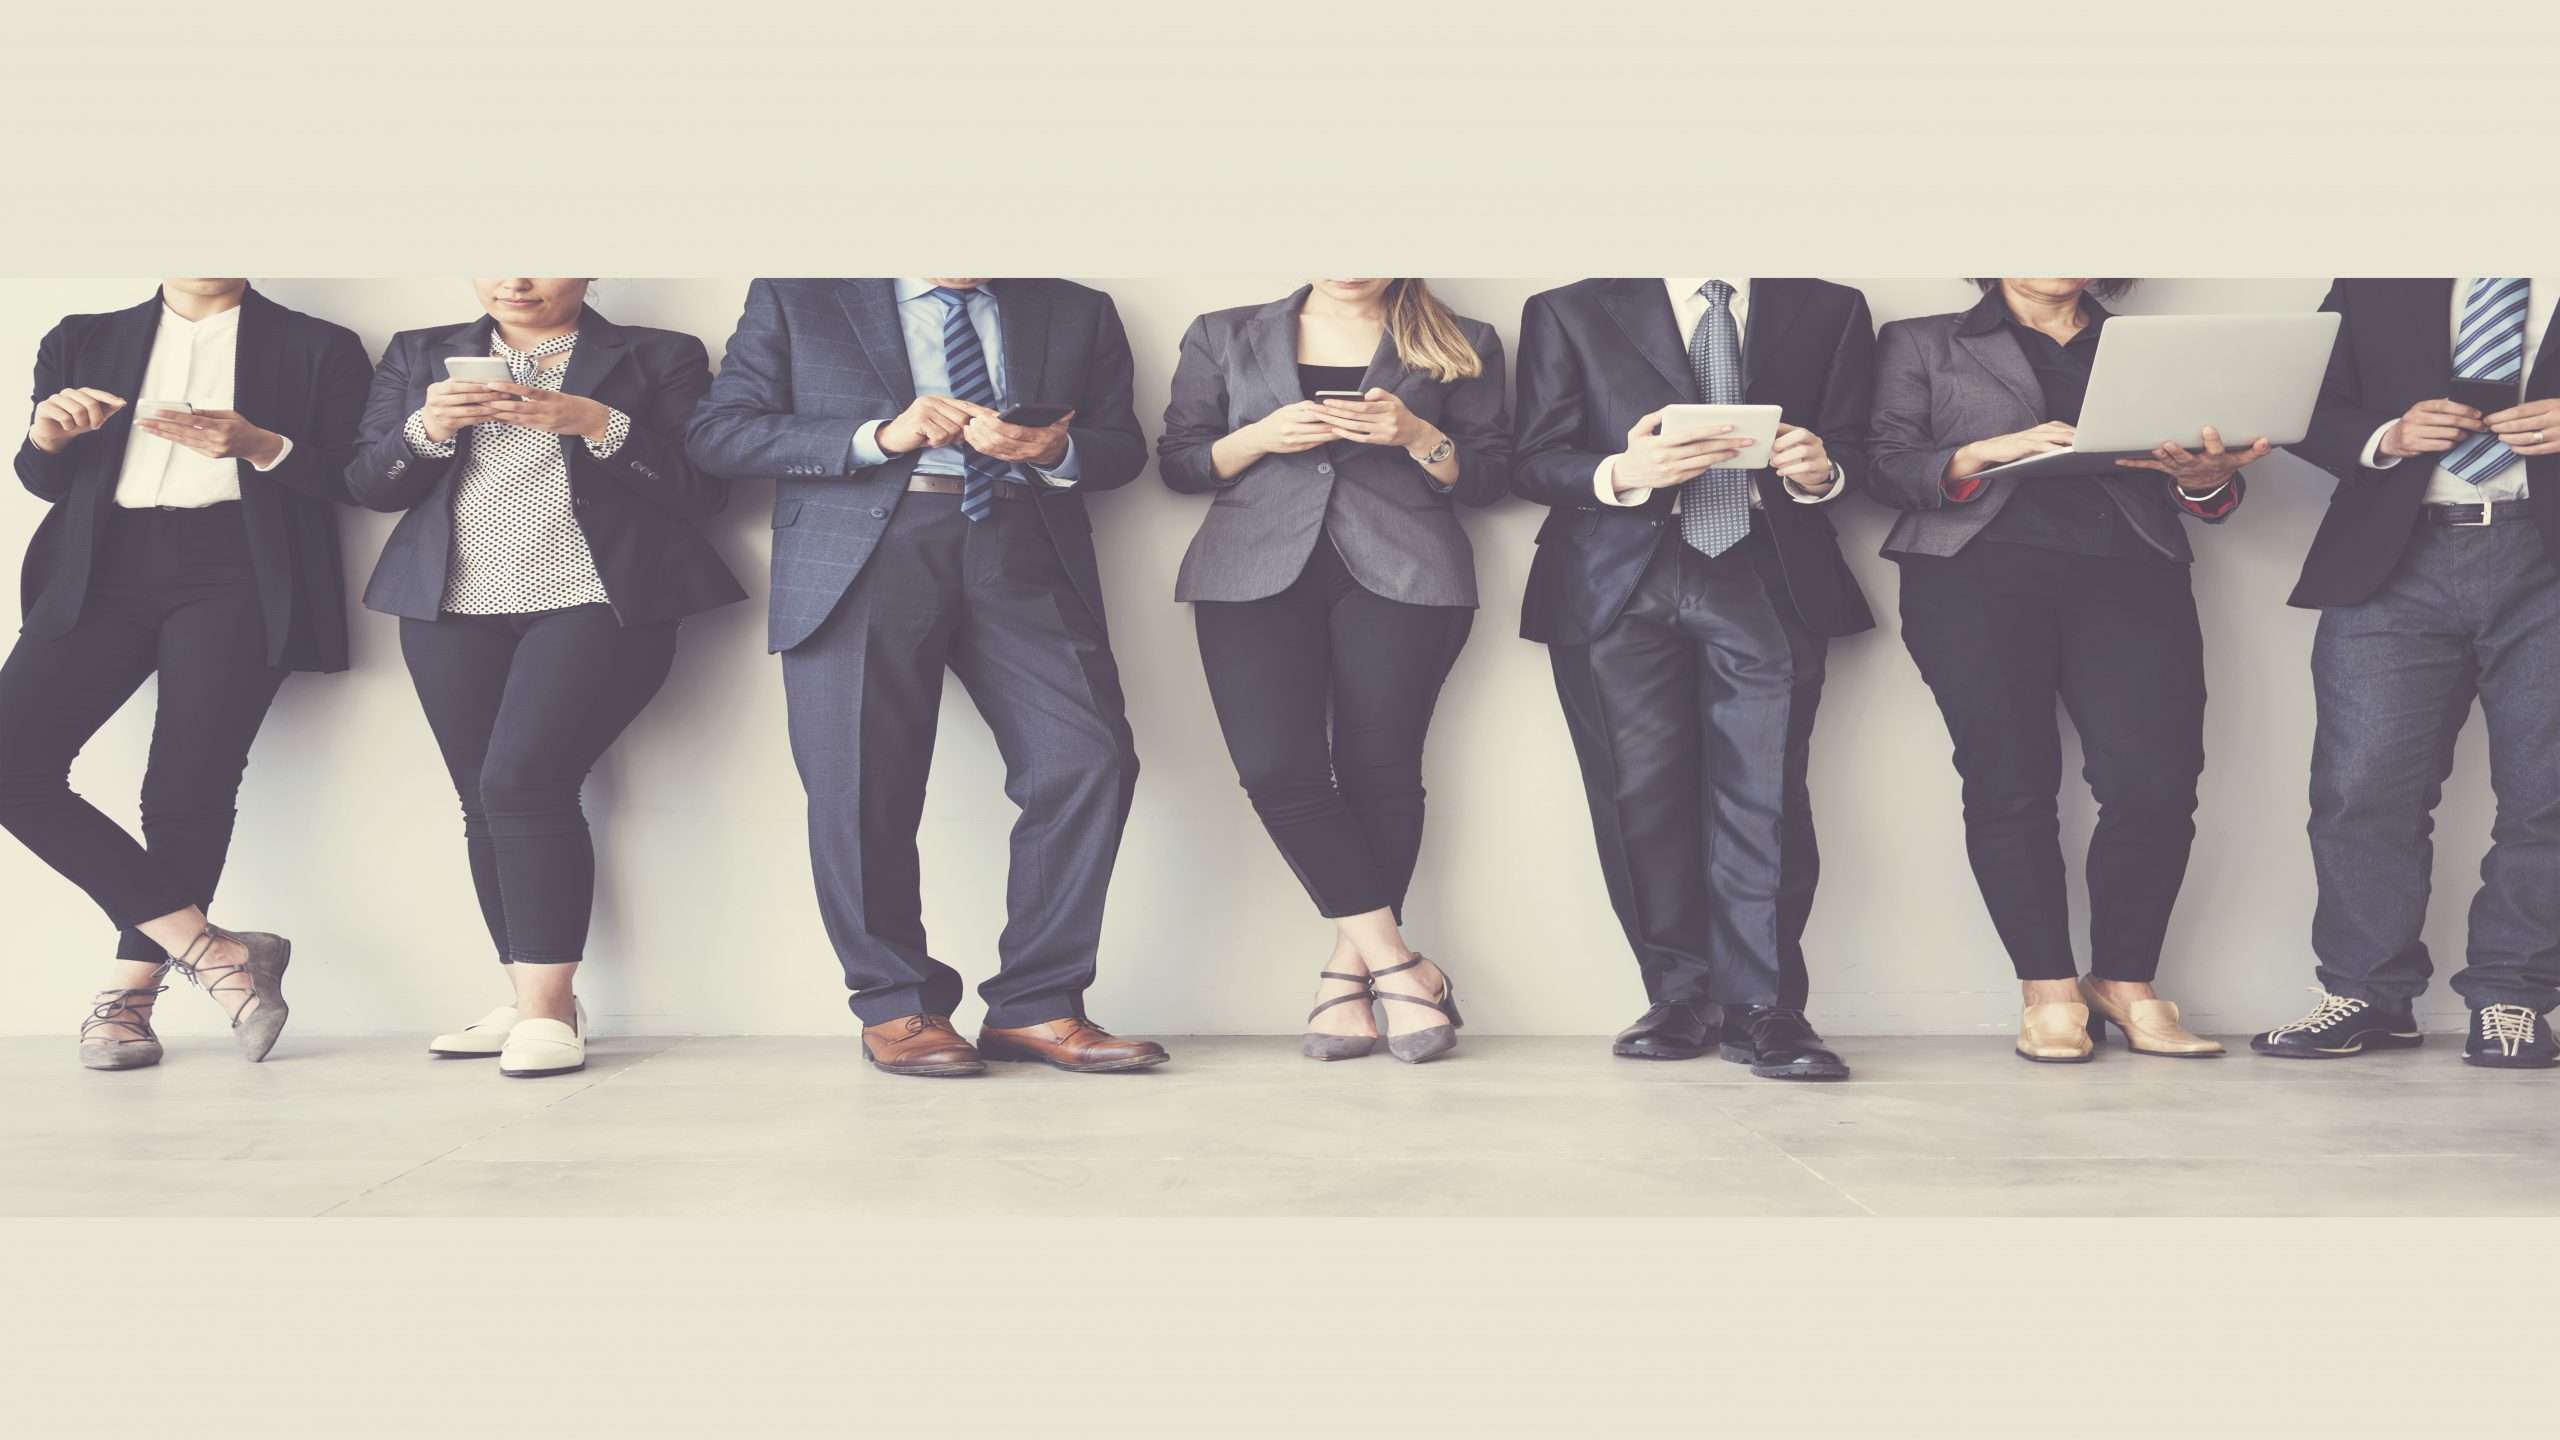 team of people in suits in a line with devices such as tablets and smartphones in their hands